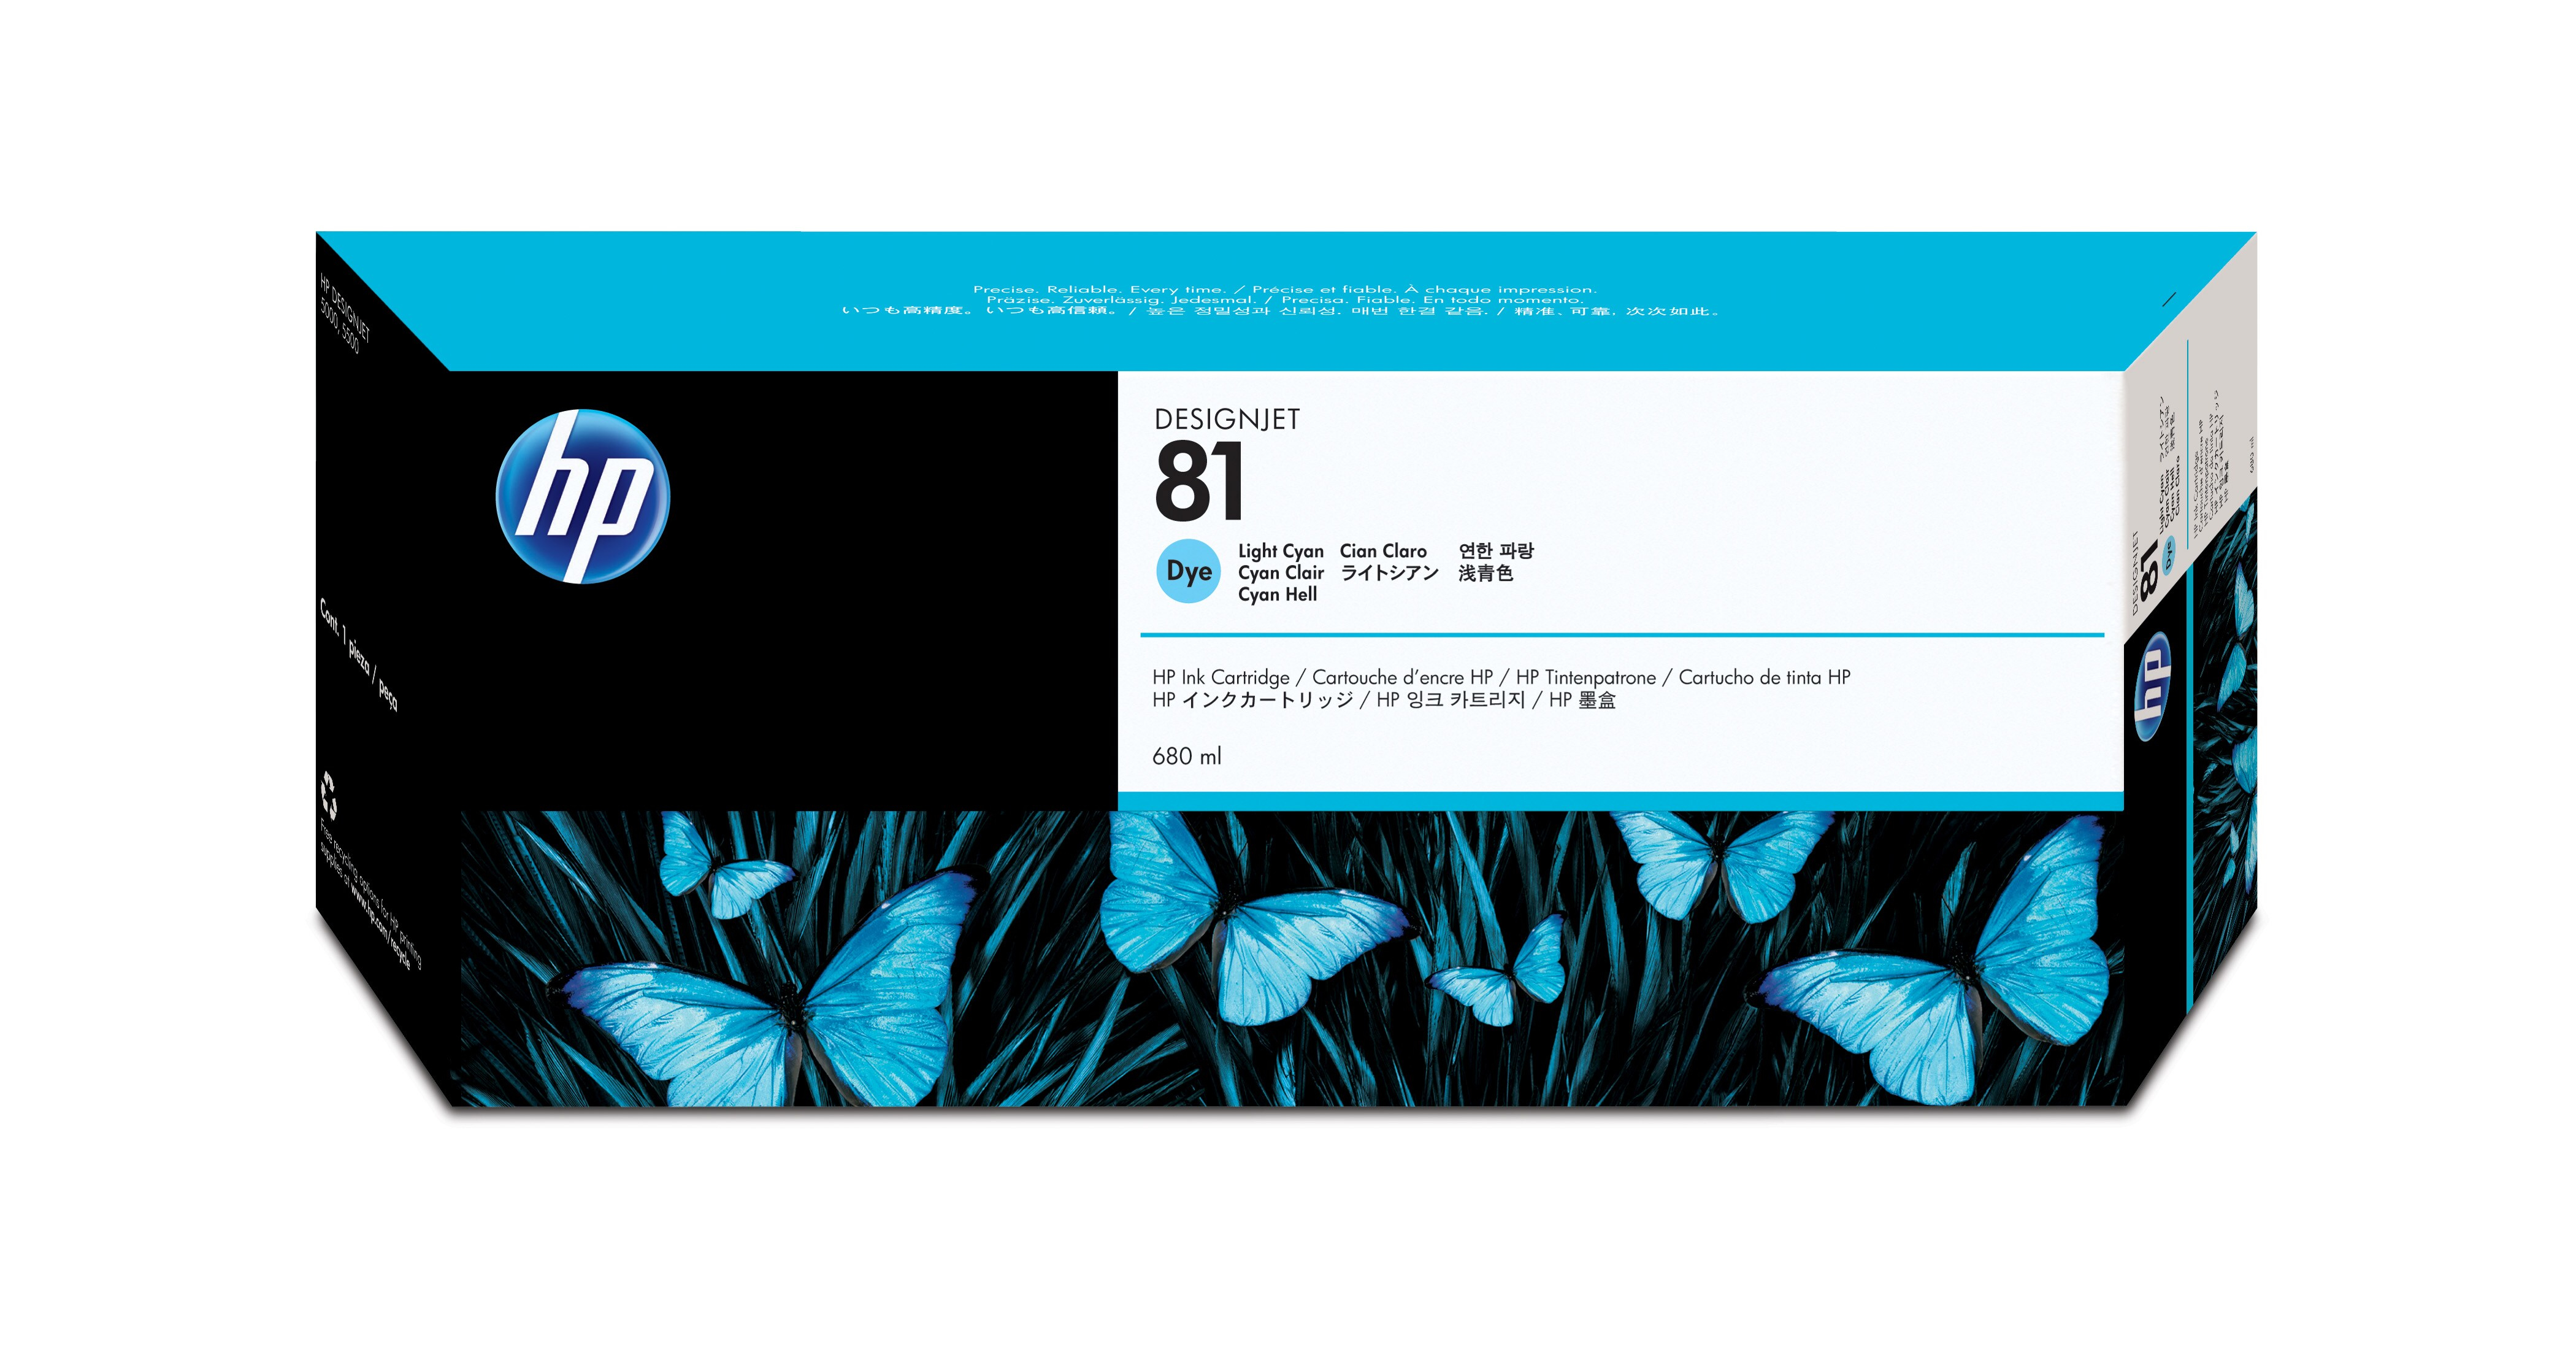 HP No. 81 Dye Ink Cartridge Light Cyan - 680ml C4934a